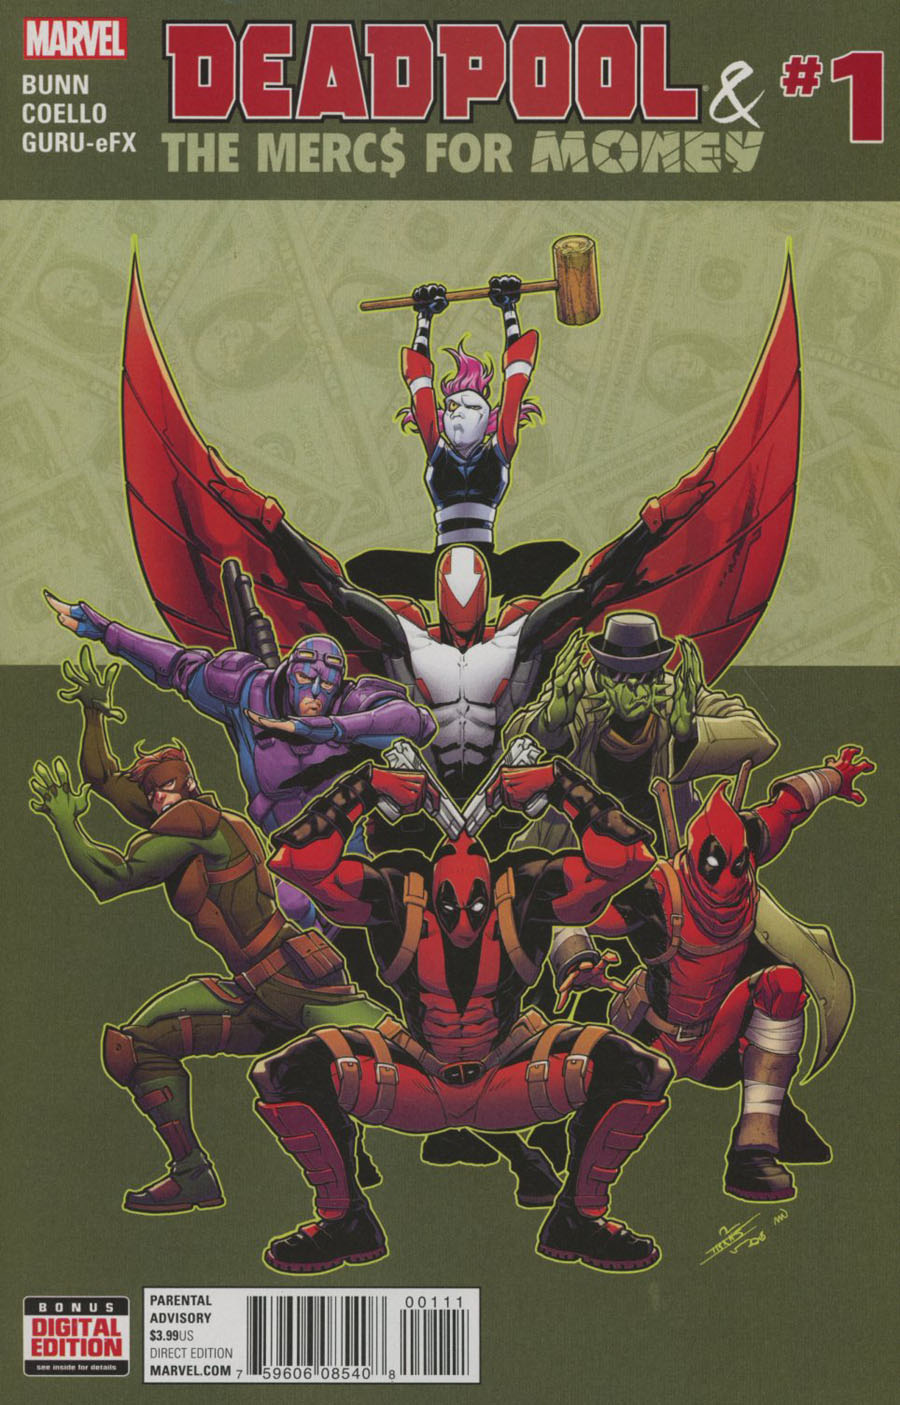 Deadpool And The Mercs For Money Vol 2 #1 Cover A Regular Iban Coello Cover